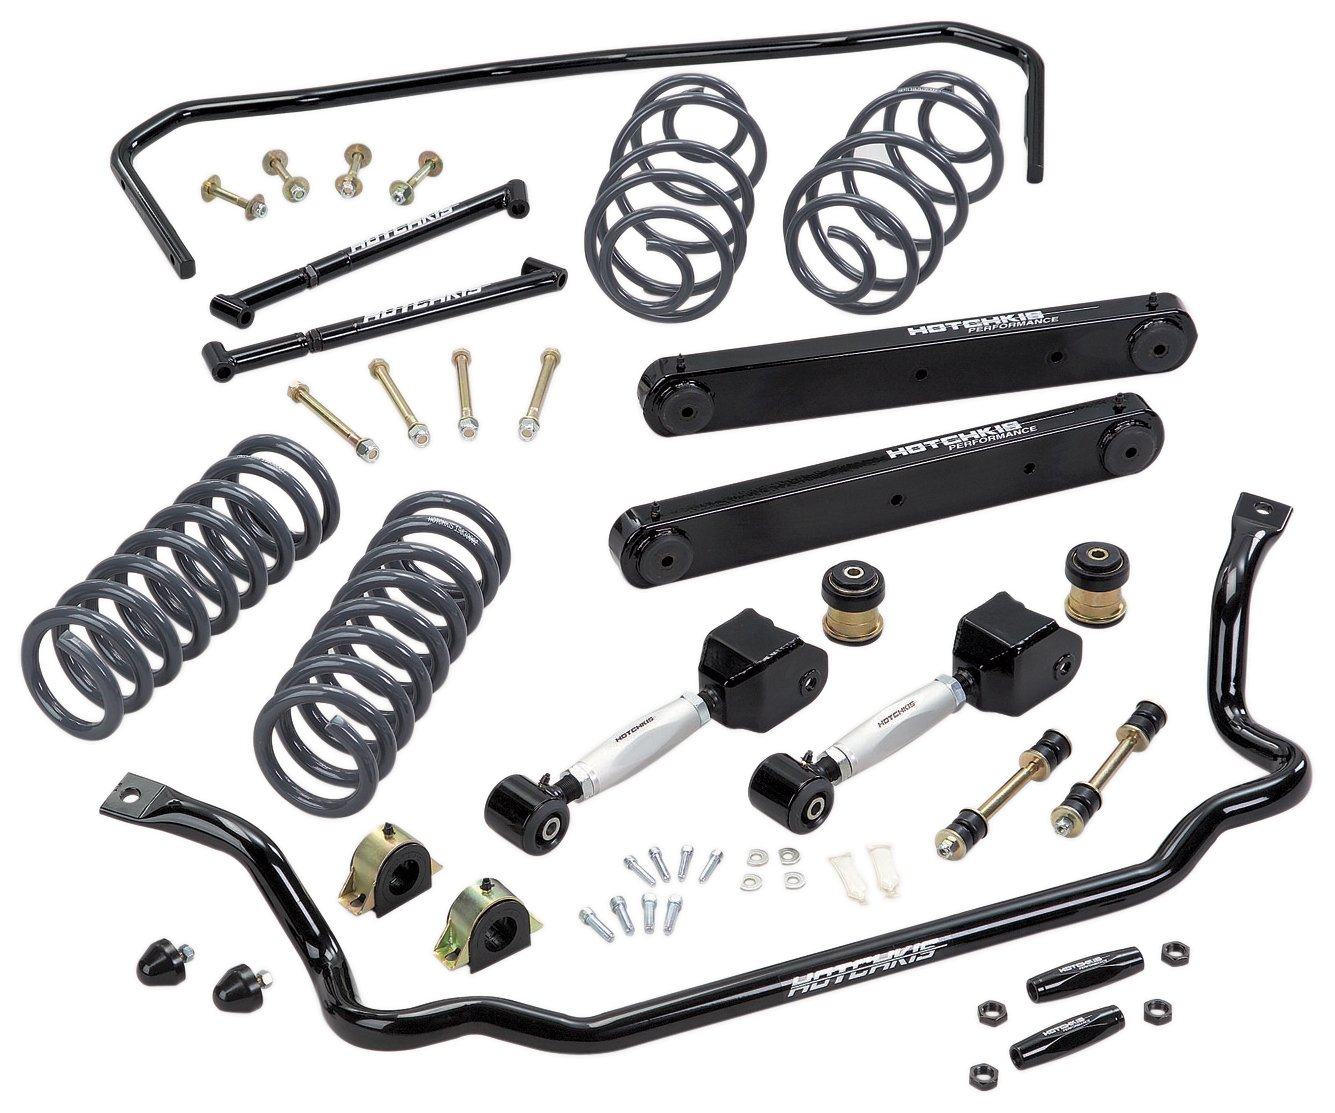 Hotchkis 80005 HP TVS Kit for GM A-Body with Big Block